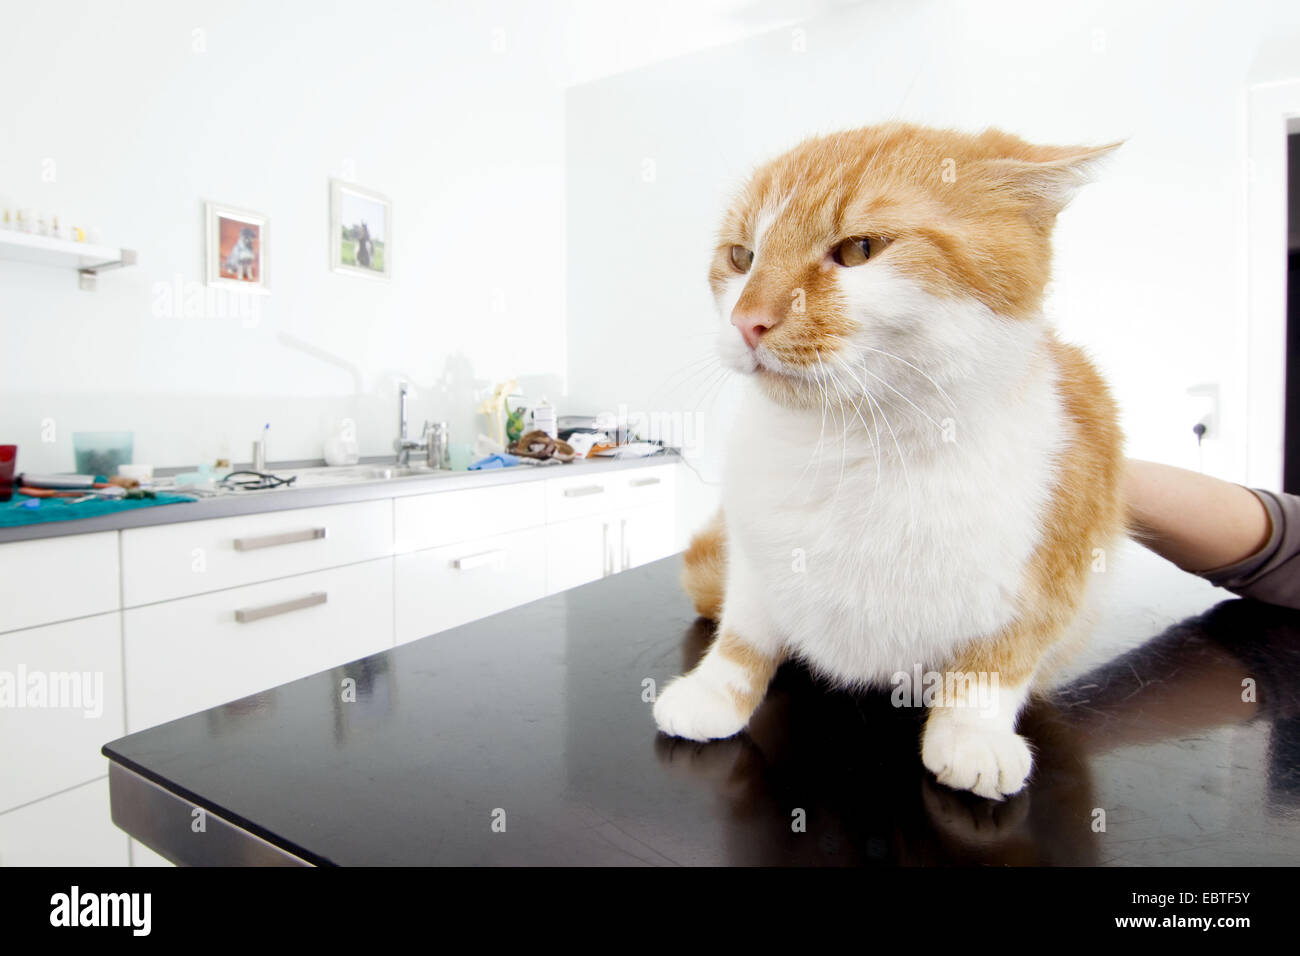 domestic cat, house cat (Felis silvestris f. catus), on table of a veterinary practice - Stock Image